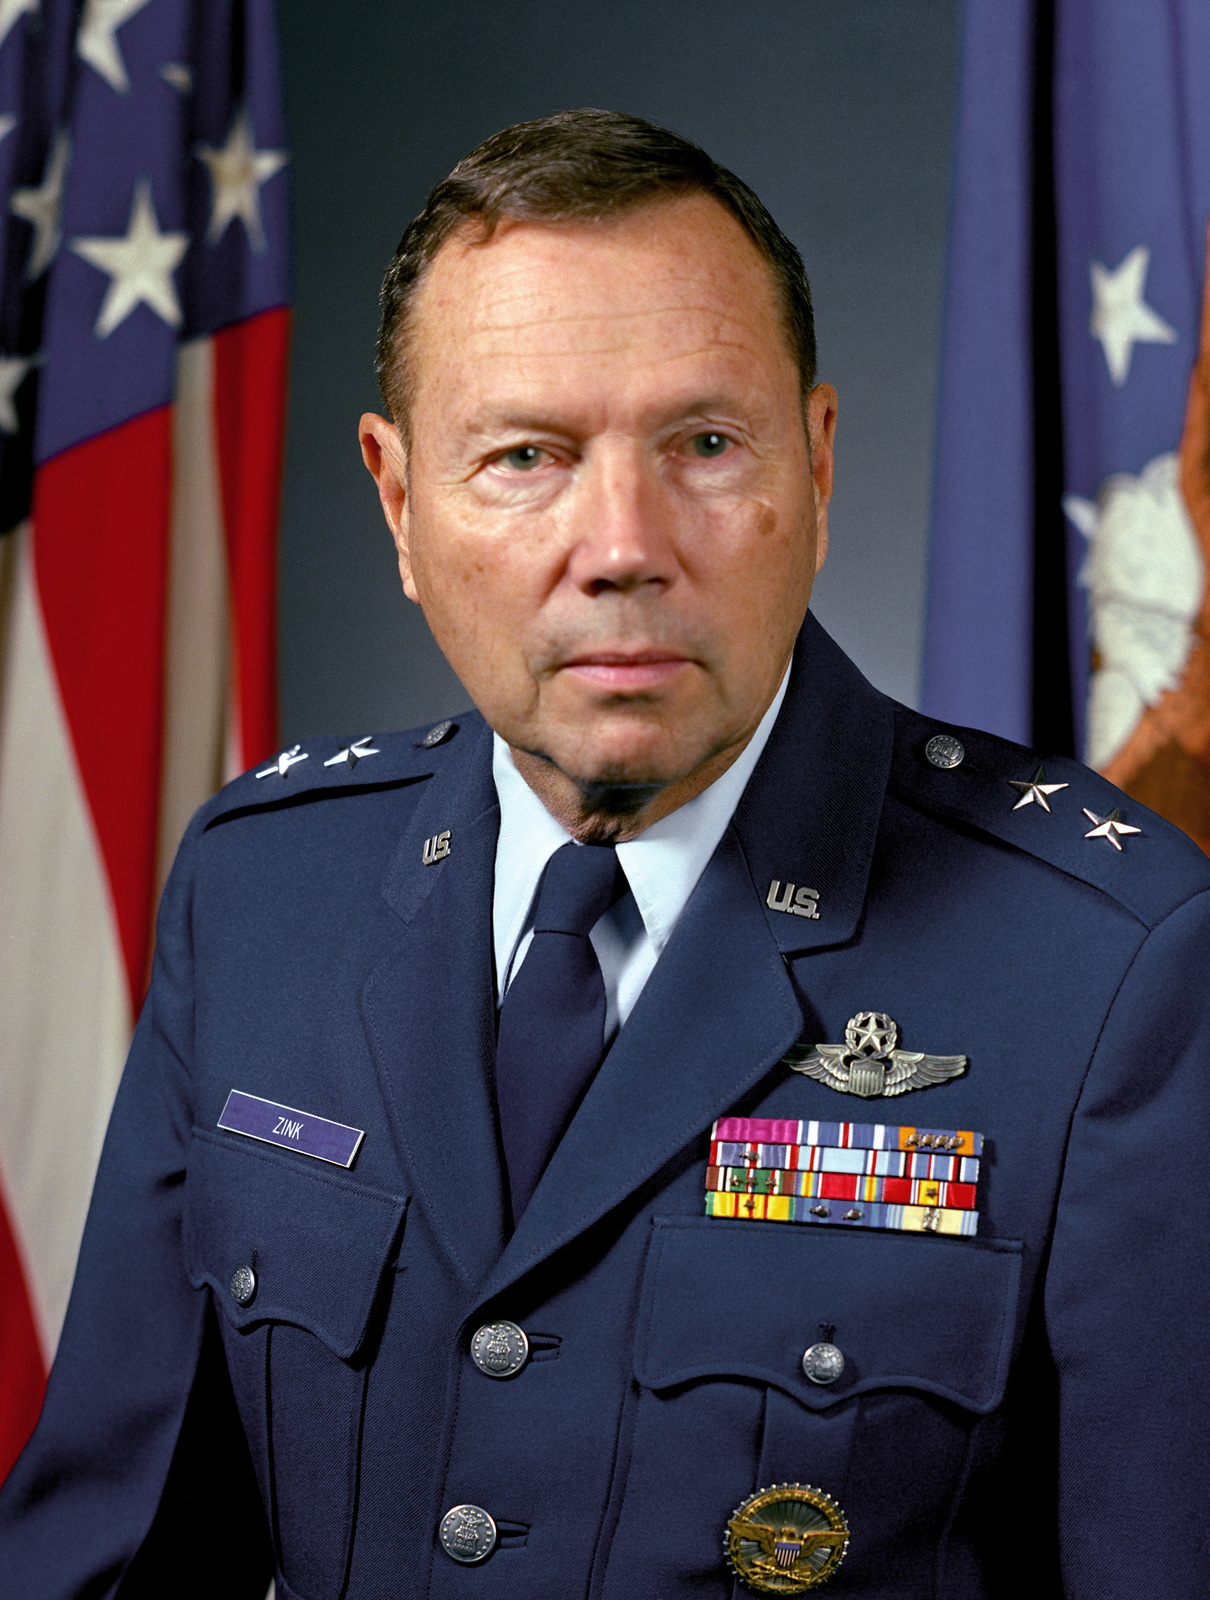 MGEN Joseph D. Zink, USAF (uncovered)